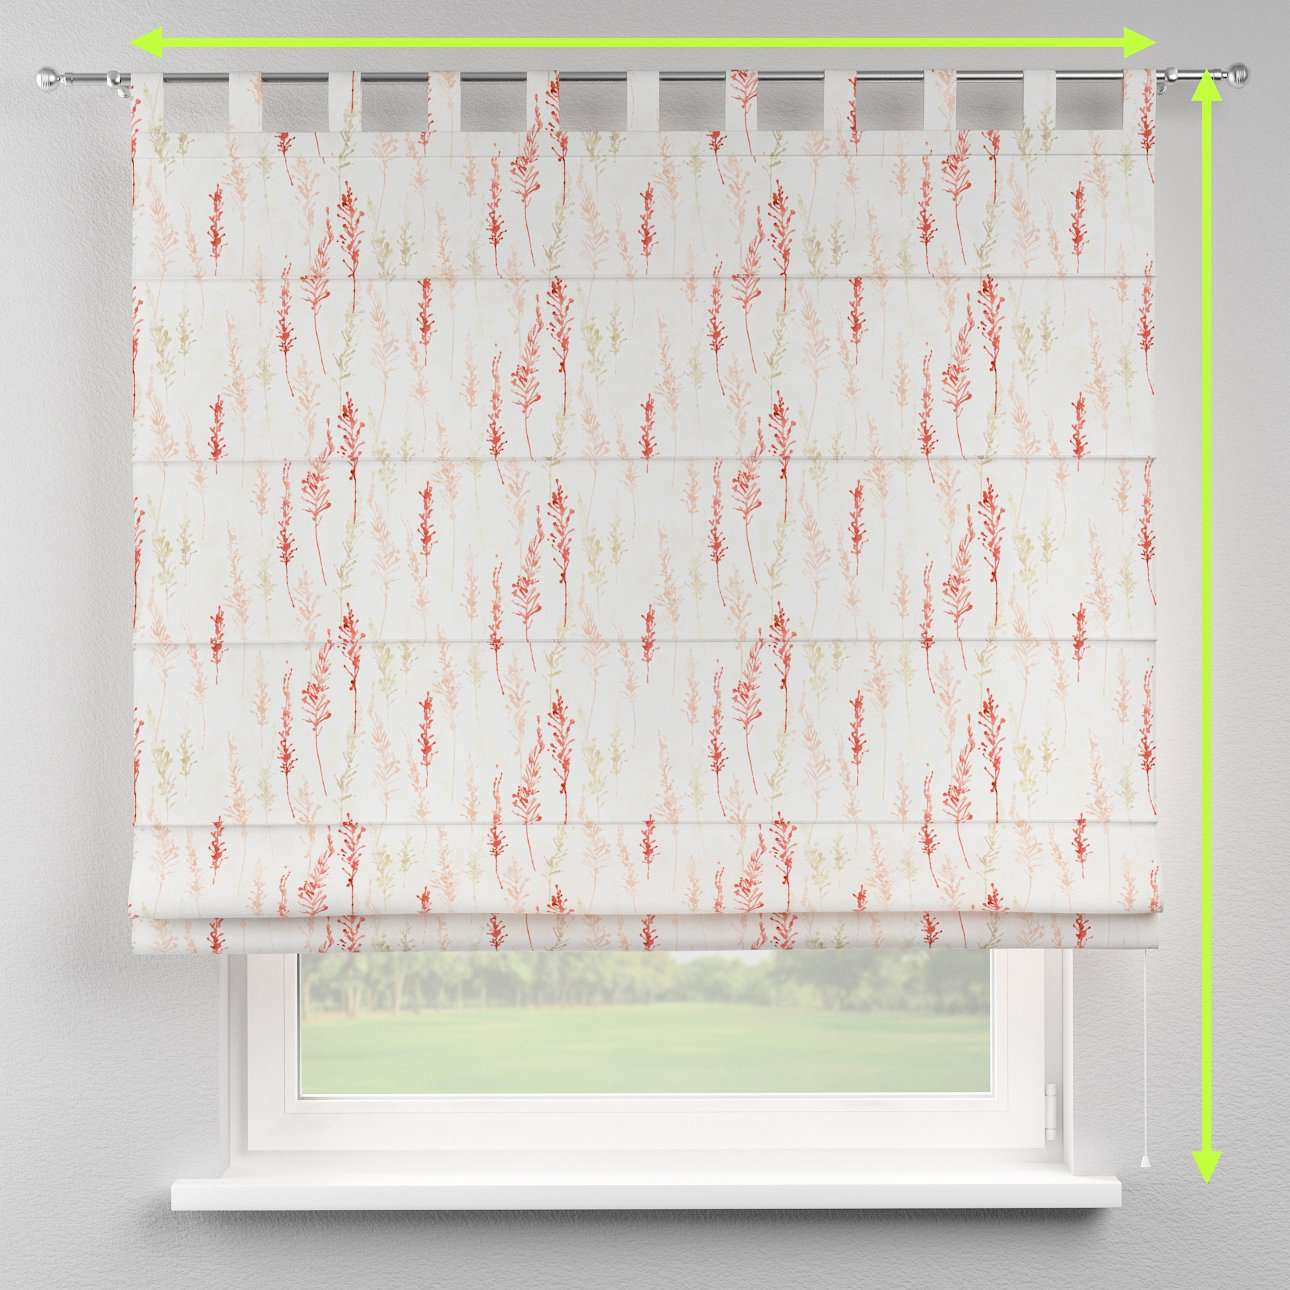 Verona tab top roman blind in collection Acapulco, fabric: 141-37